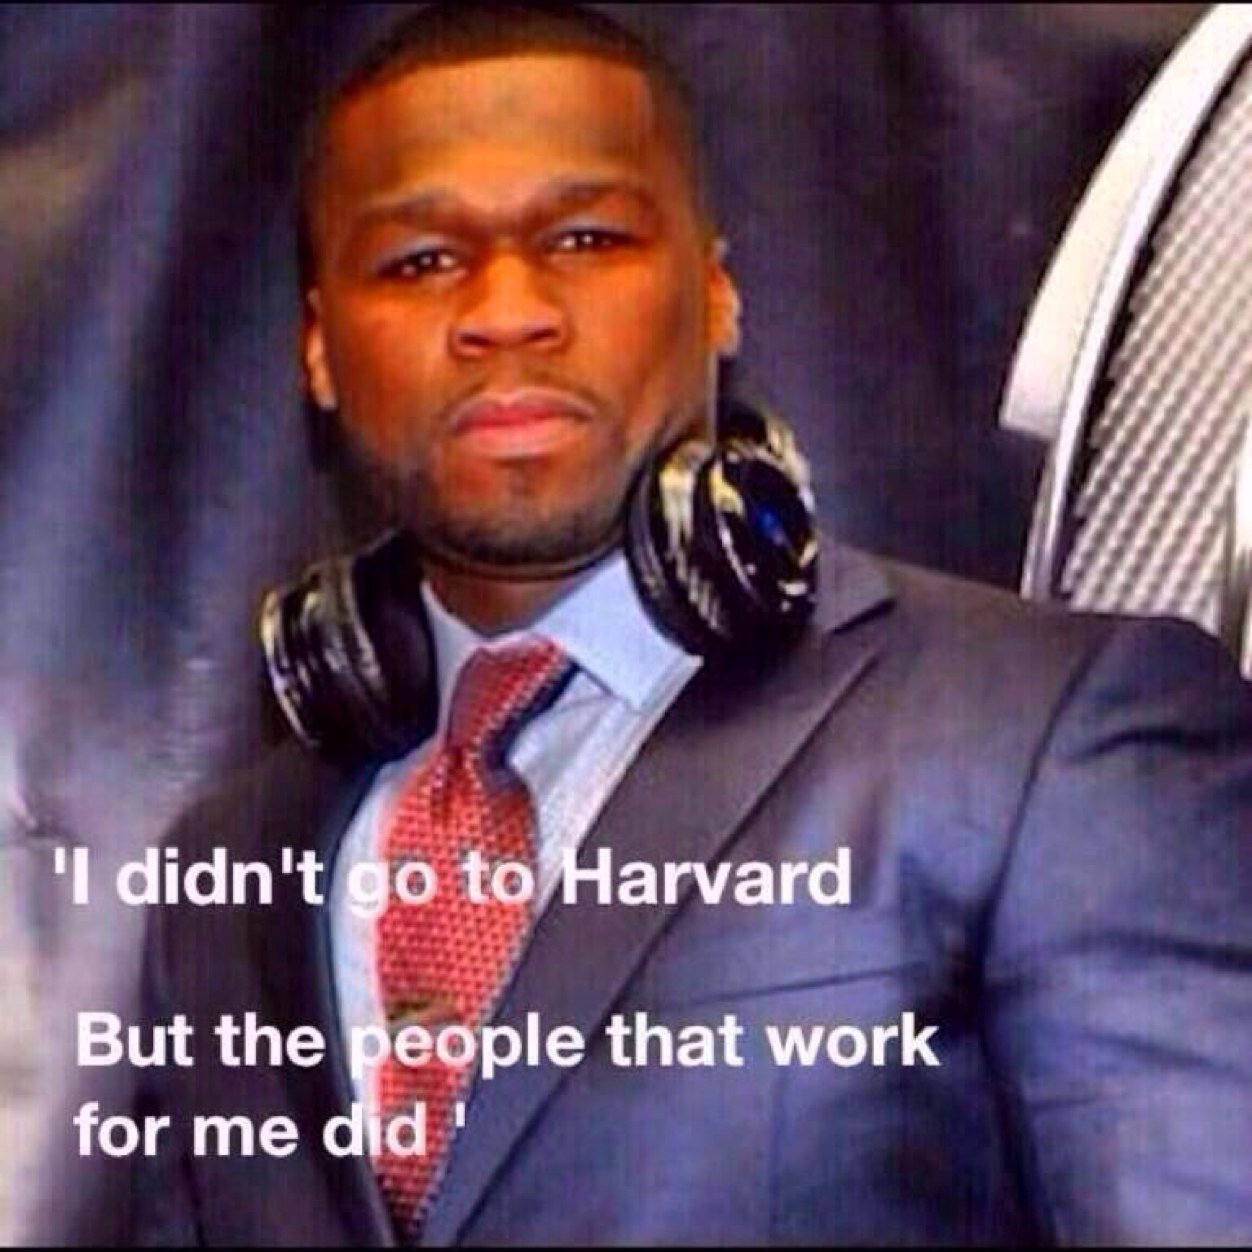 50 Cent Love Quotes : 50 Cent Famous Quotes. QuotesGram